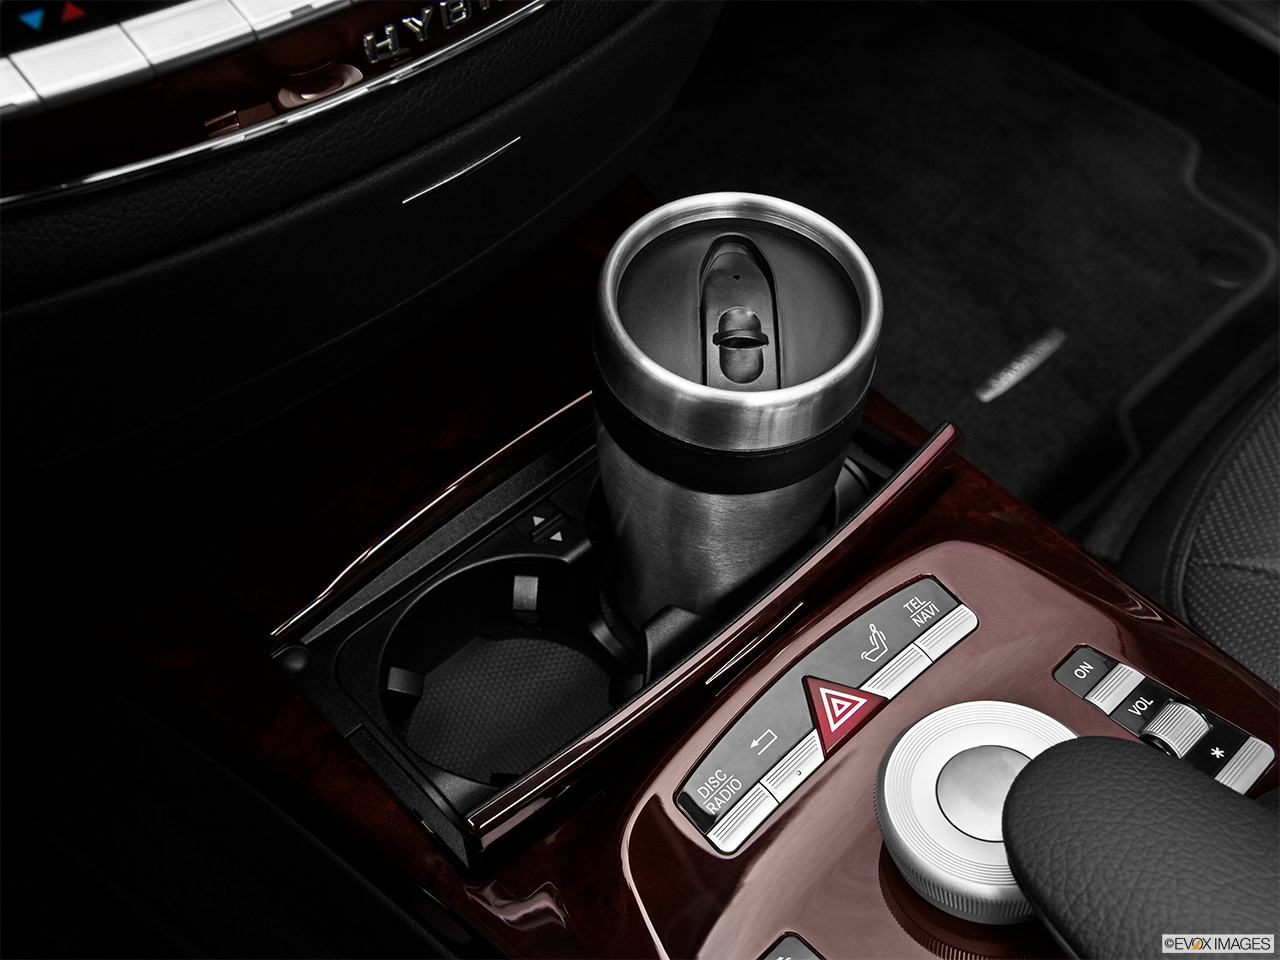 2012 Mercedes-Benz S-Class Hybrid S400 Cup holder prop (primary).